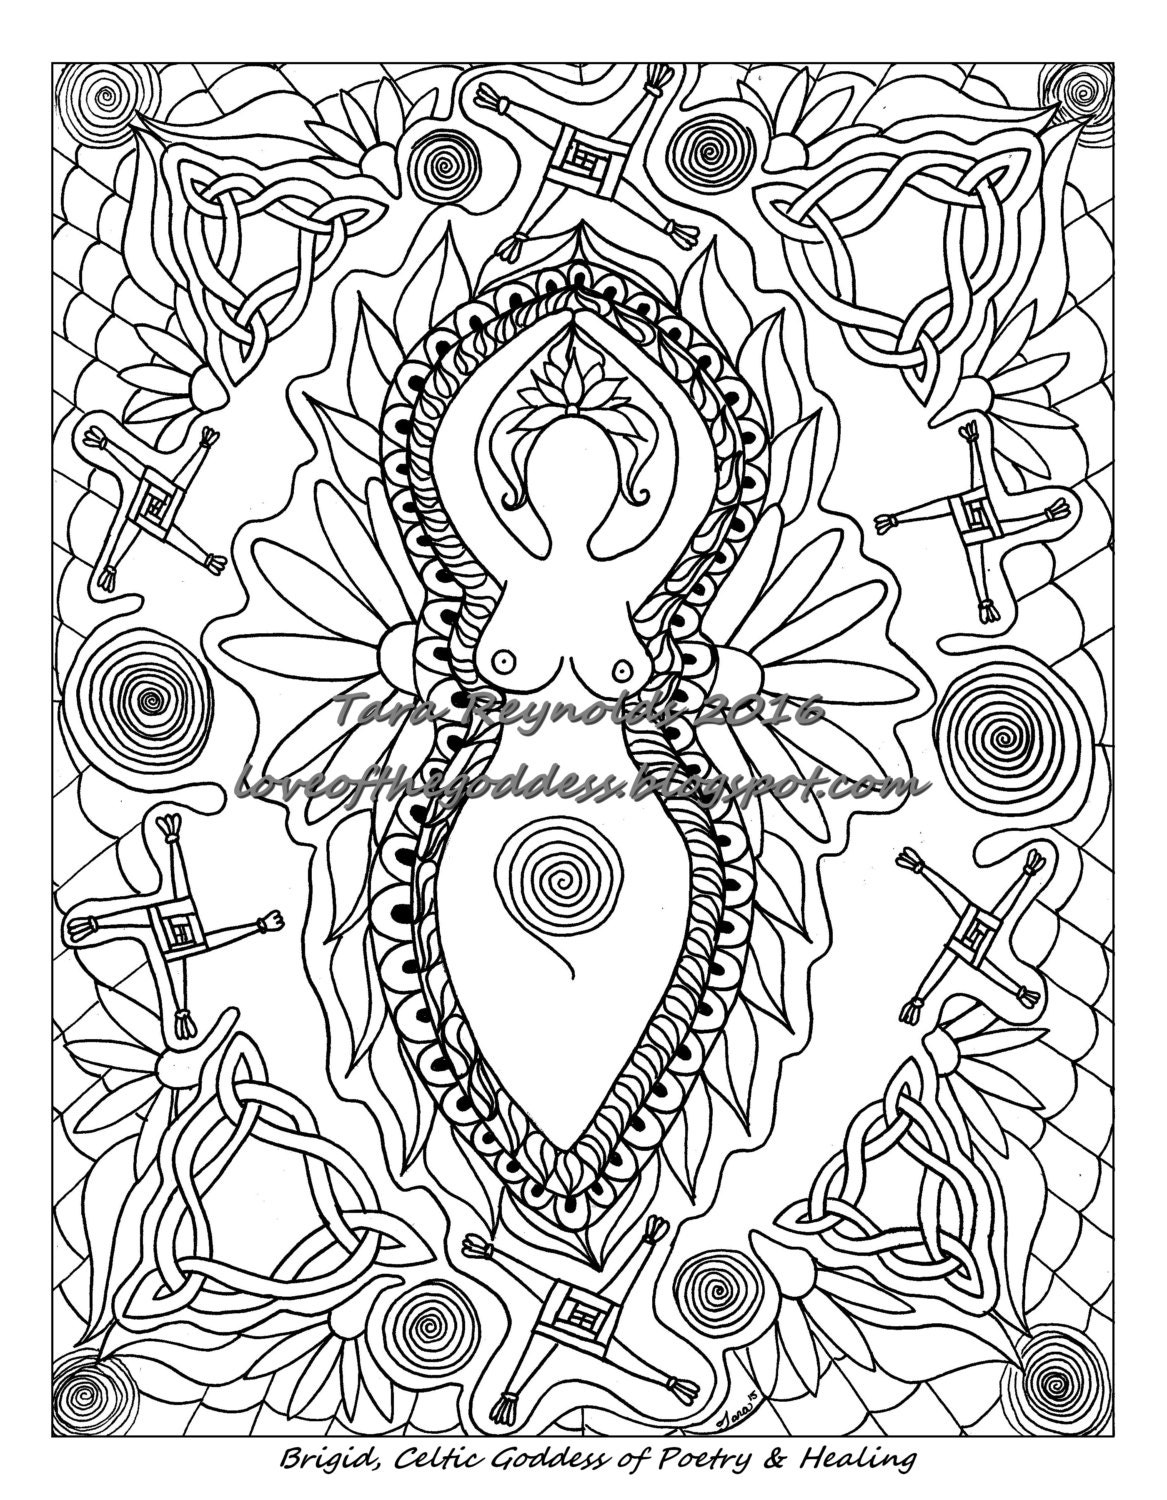 Spiritual Art Goddess Brigid Coloring Pages For Adults St